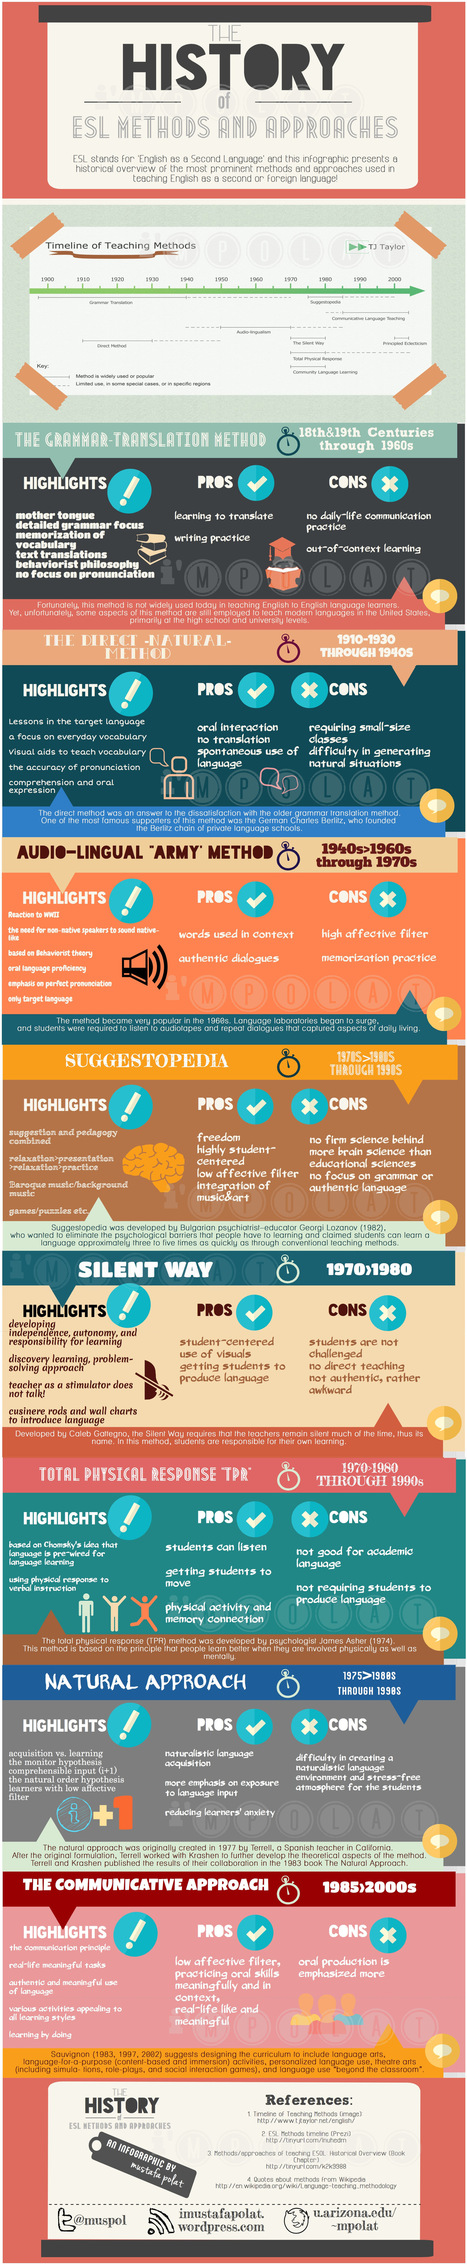 My 1st Infographic: The History of ESL Methods/Approaches | Teaching English as an Additional Language | Scoop.it